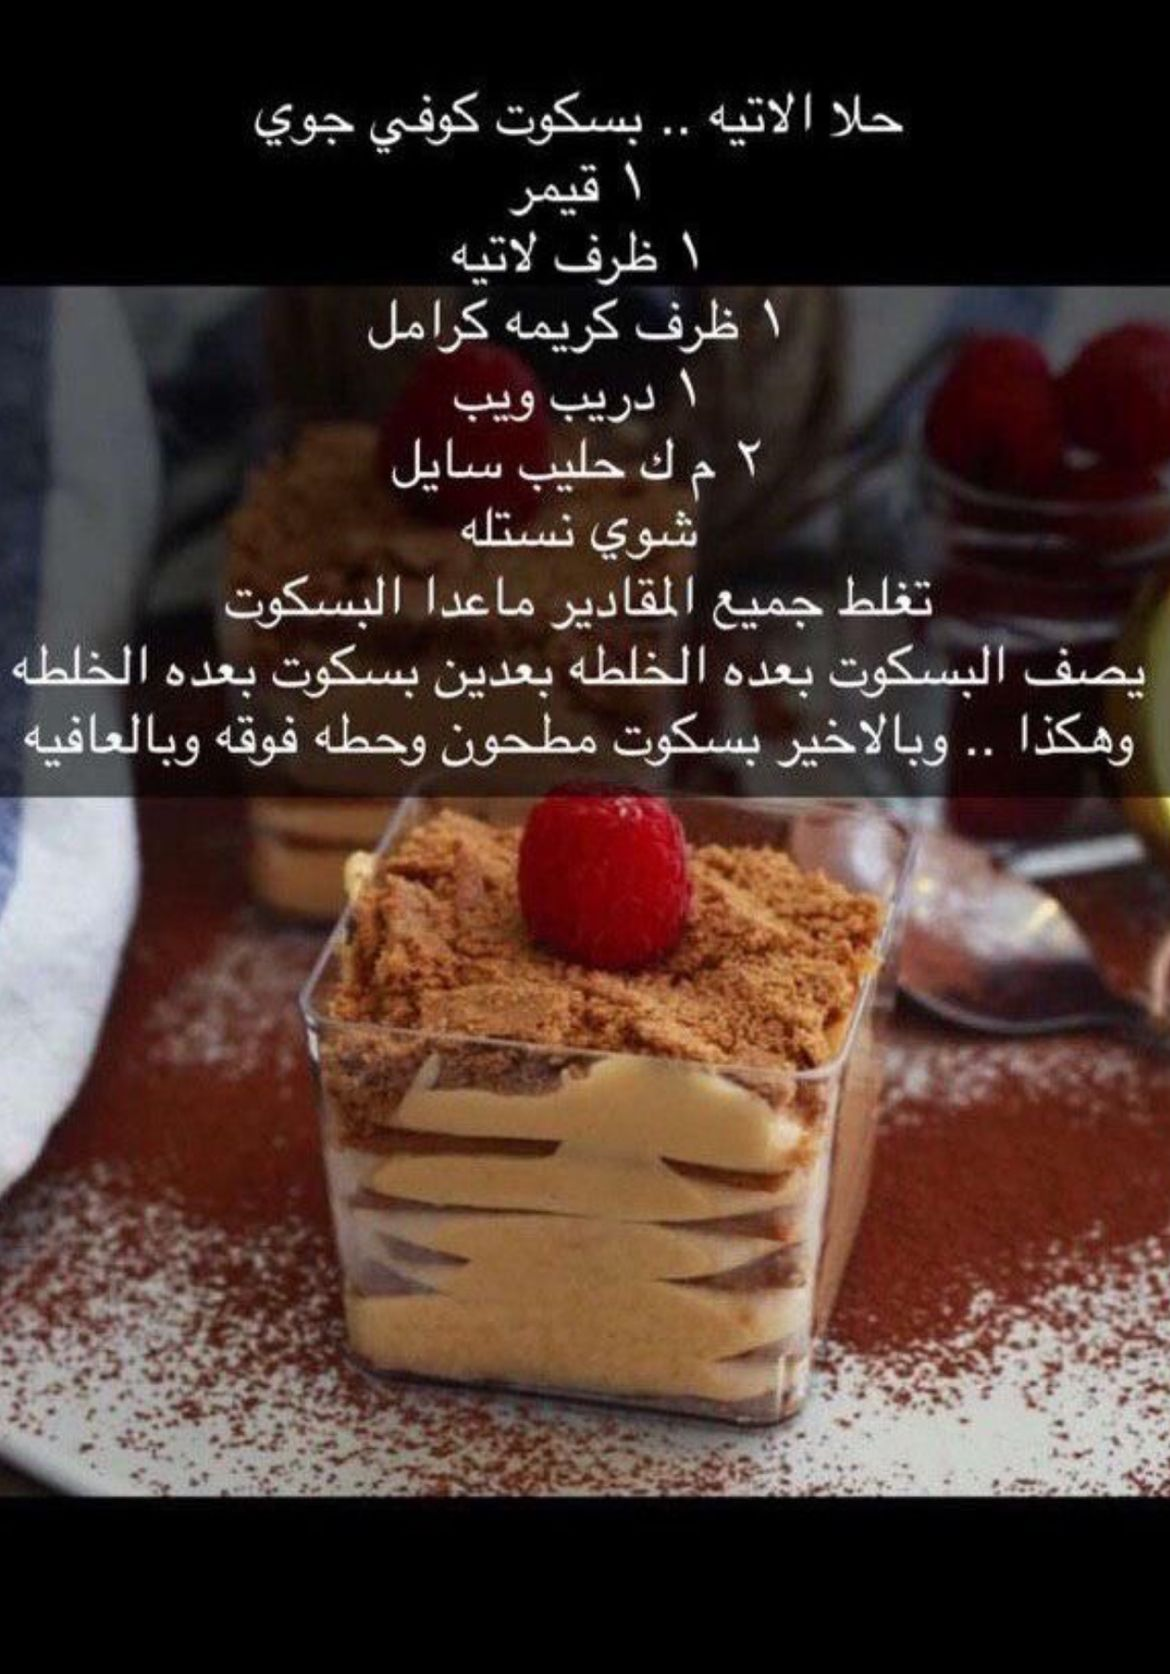 Pin By Najlatala On طبخات In 2021 Helthy Food Cooking Recipes Desserts Food Receipes